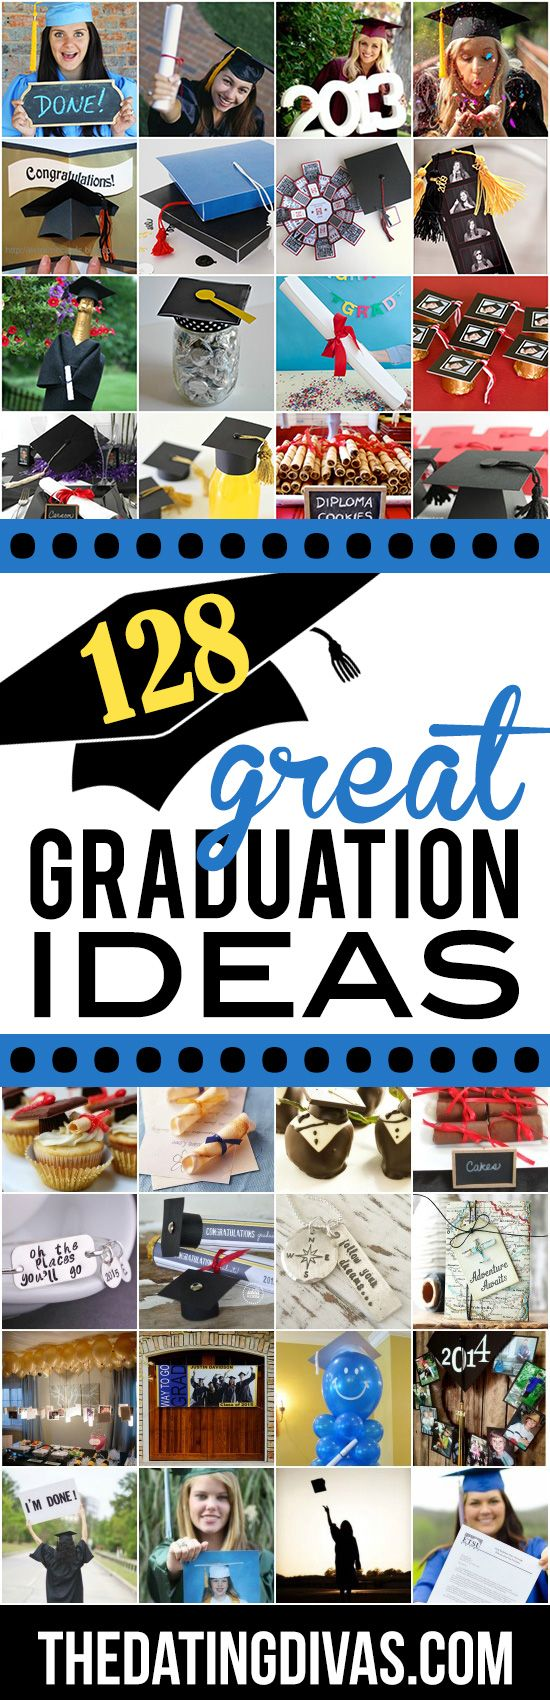 128 Great Graduation Ideas- everything from grad gifts to parties to photo ideas